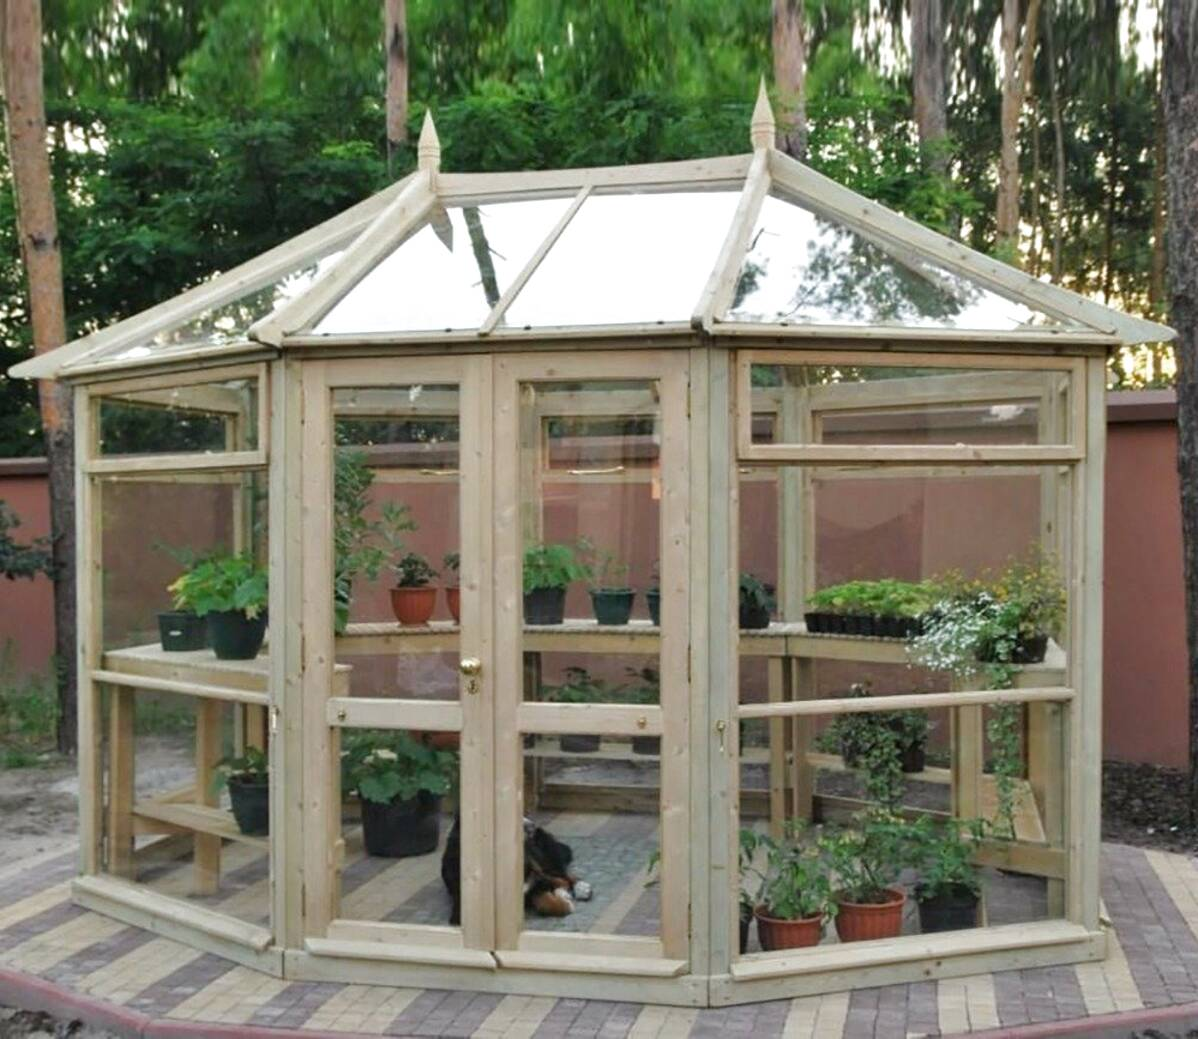 edwardian greenhouse for sale